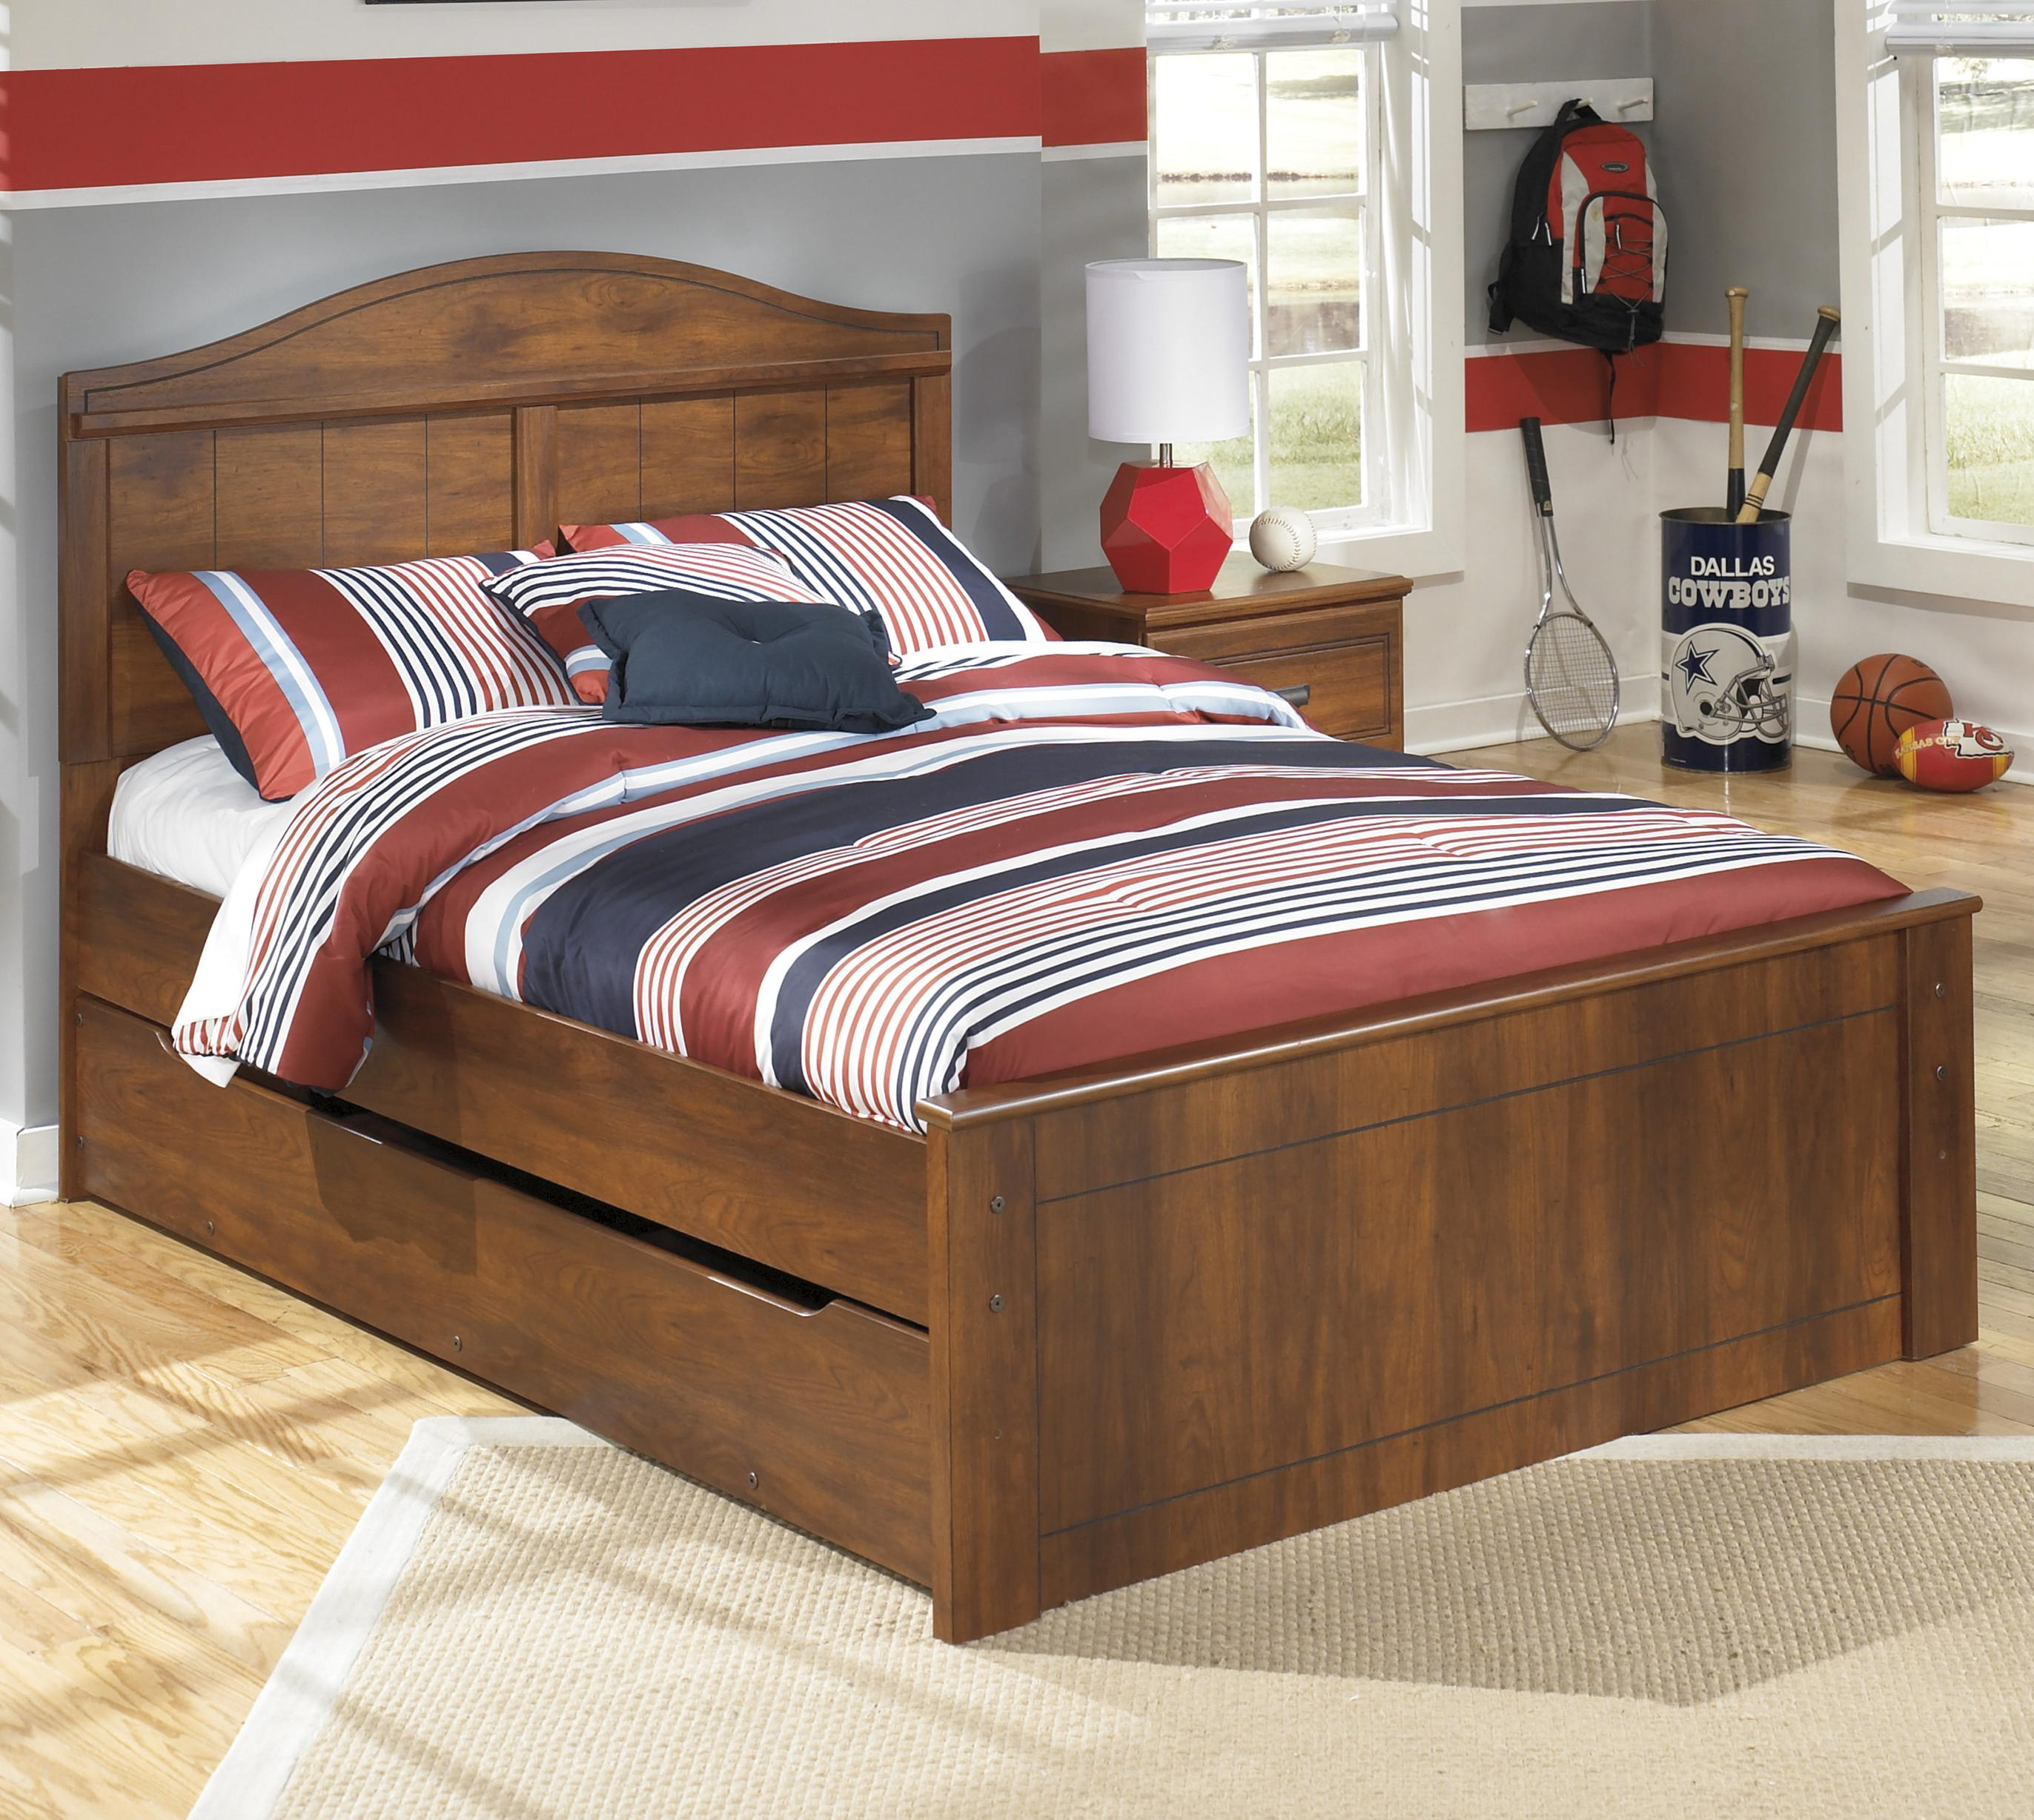 Full Panel Bed With Trundle Under Bed Storage Unit By